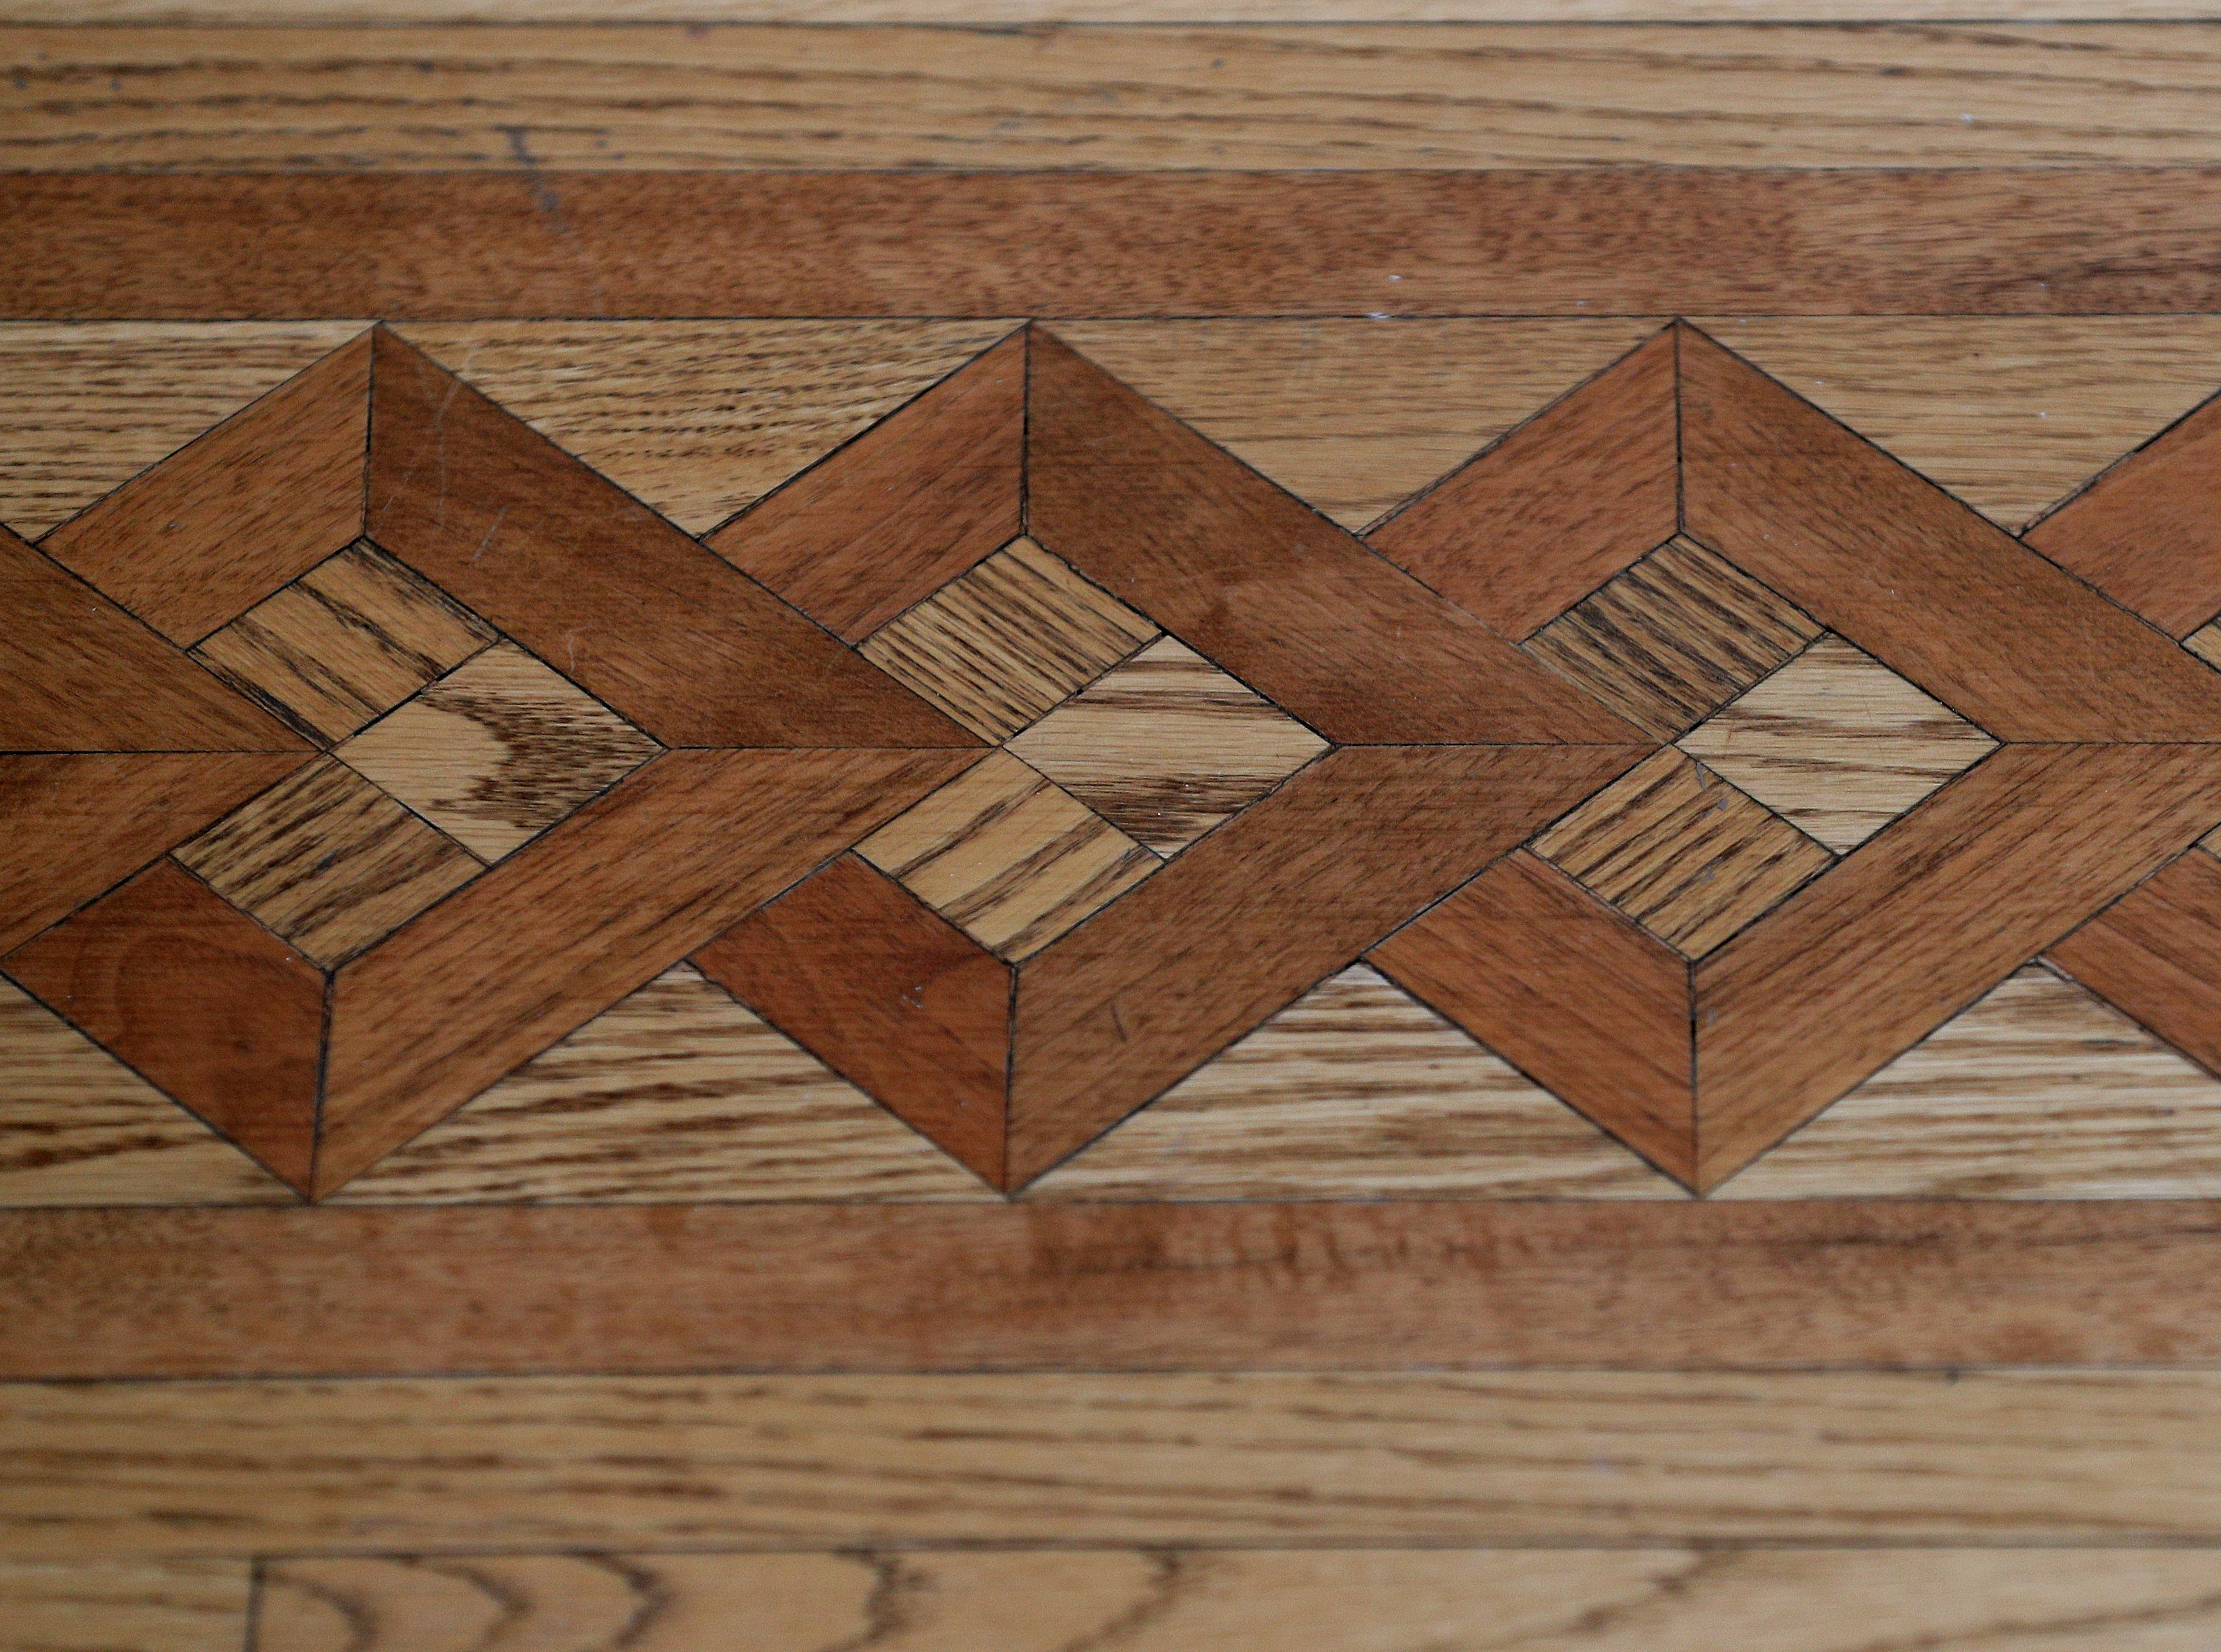 Detail of some of the hardwood flooring.